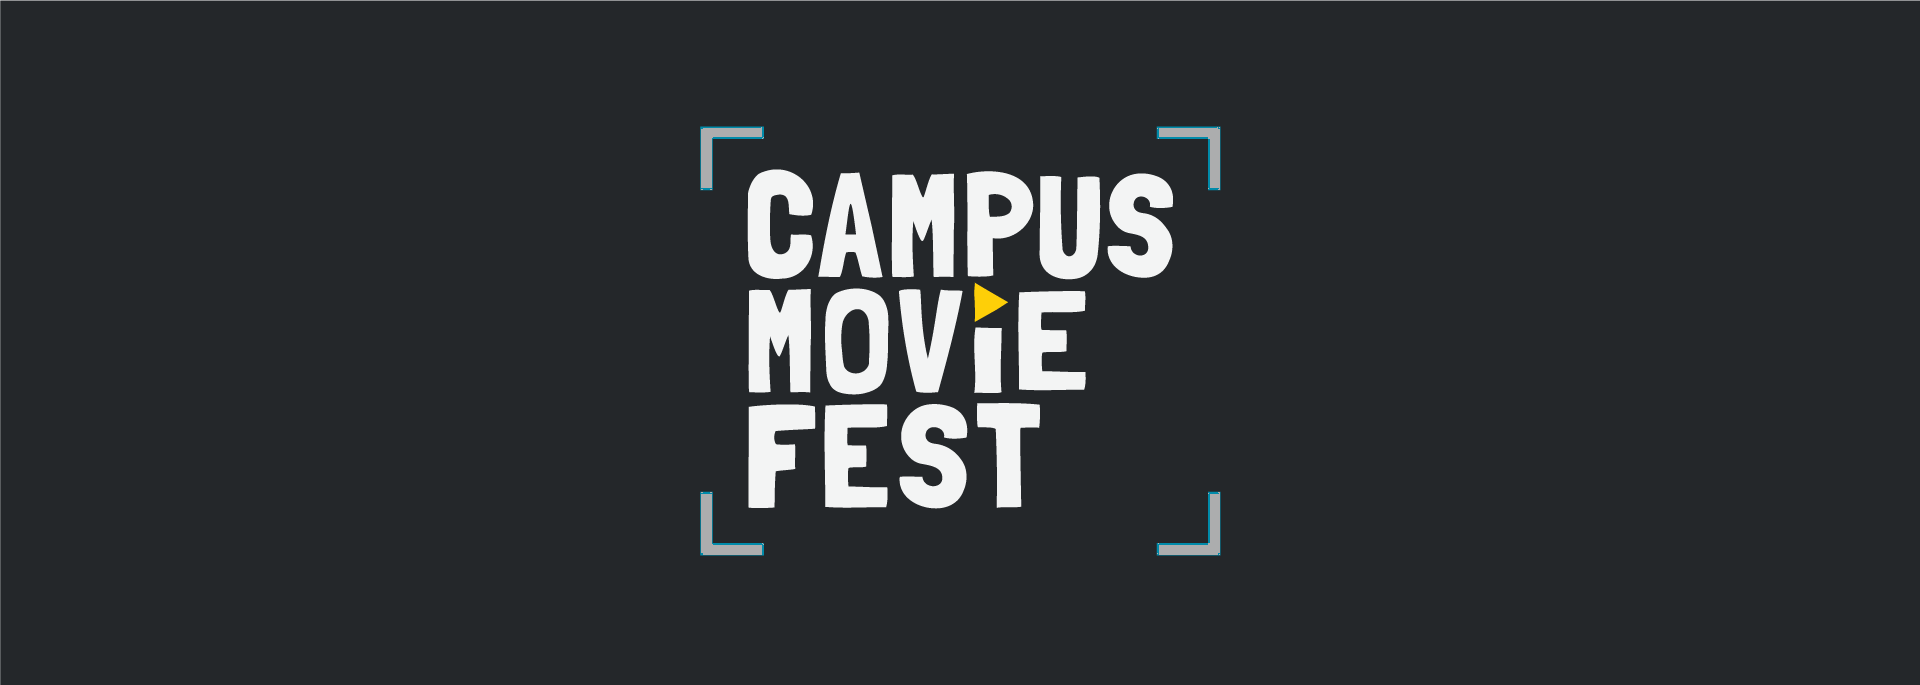 Campus Movie Fest channel